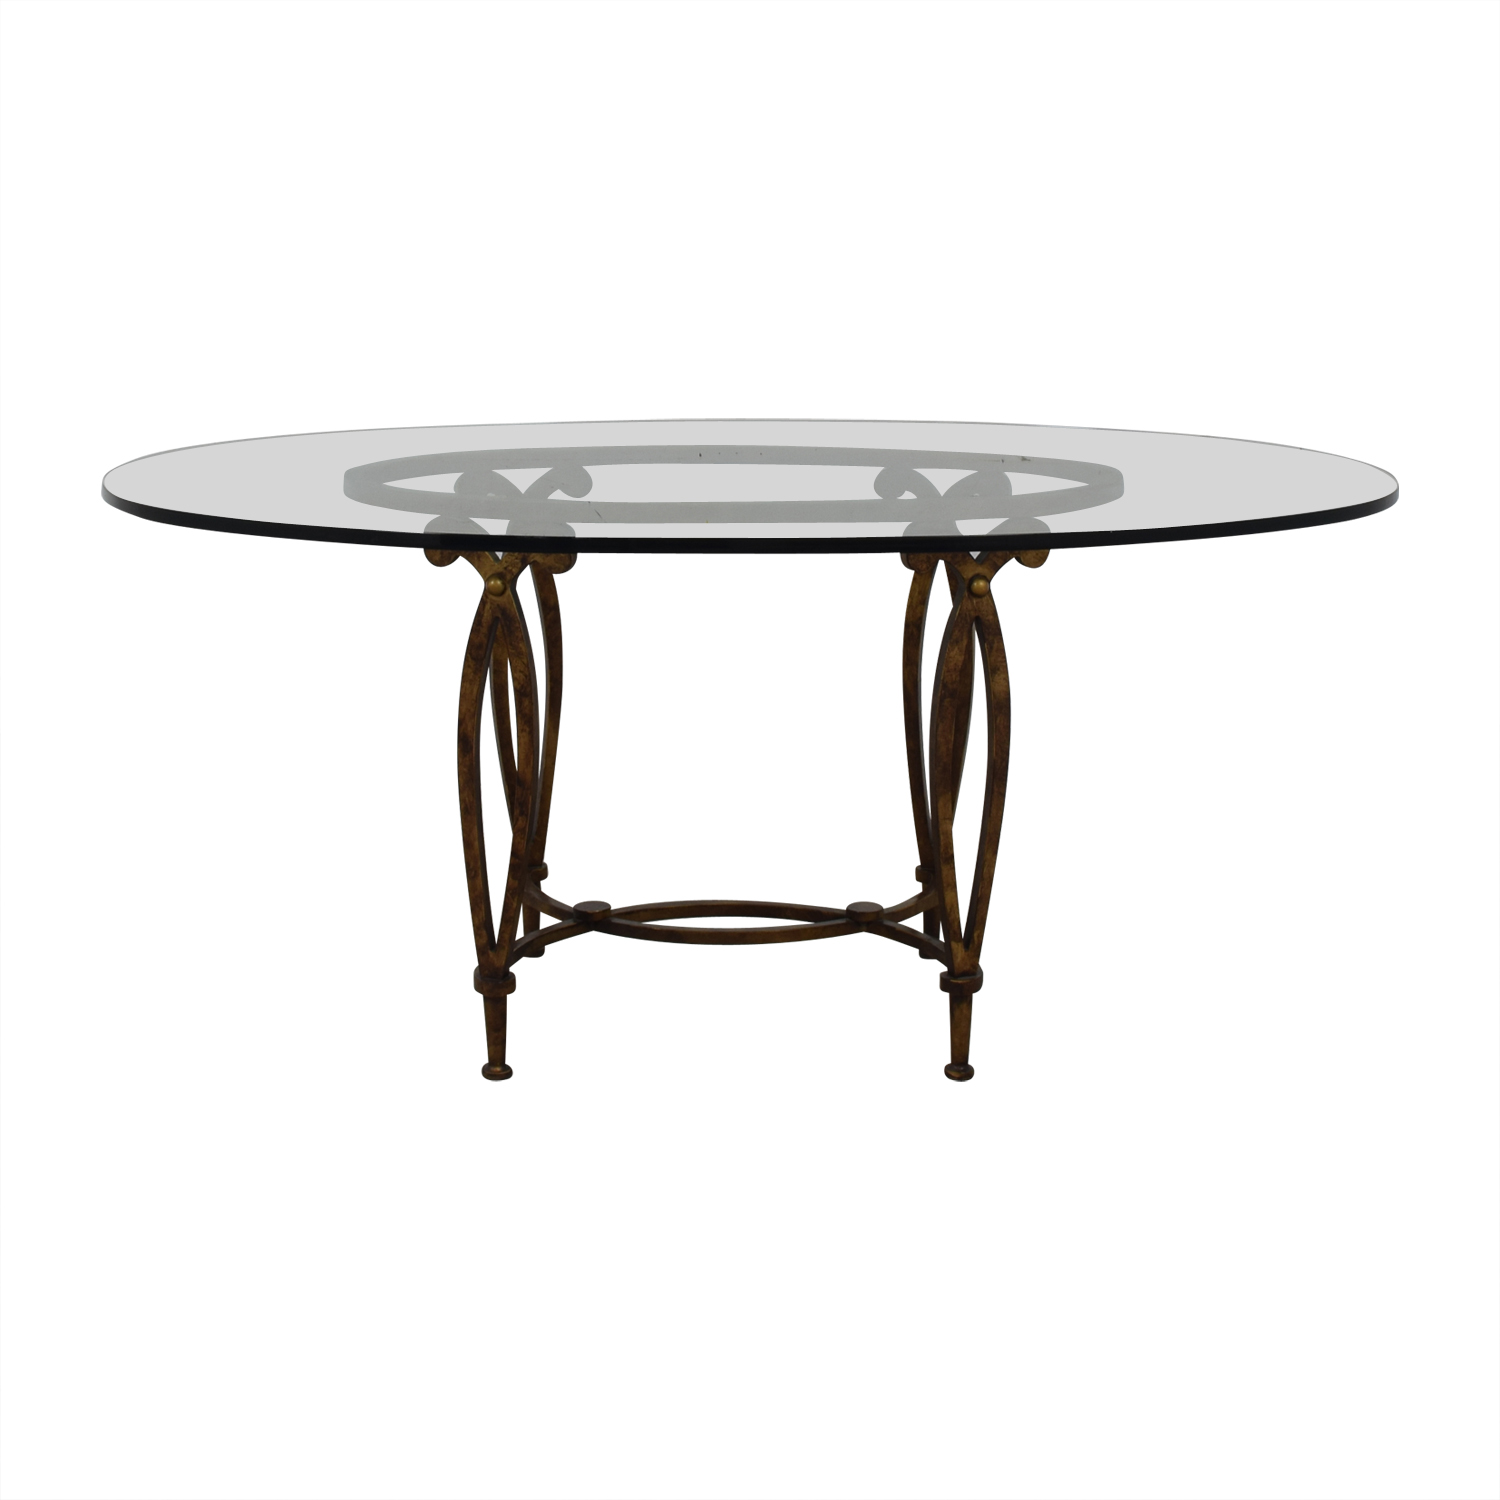 49f58325f3d1 87% OFF - Bloomingdale s Bloomingdale s Glass Top Dining Room Table ...